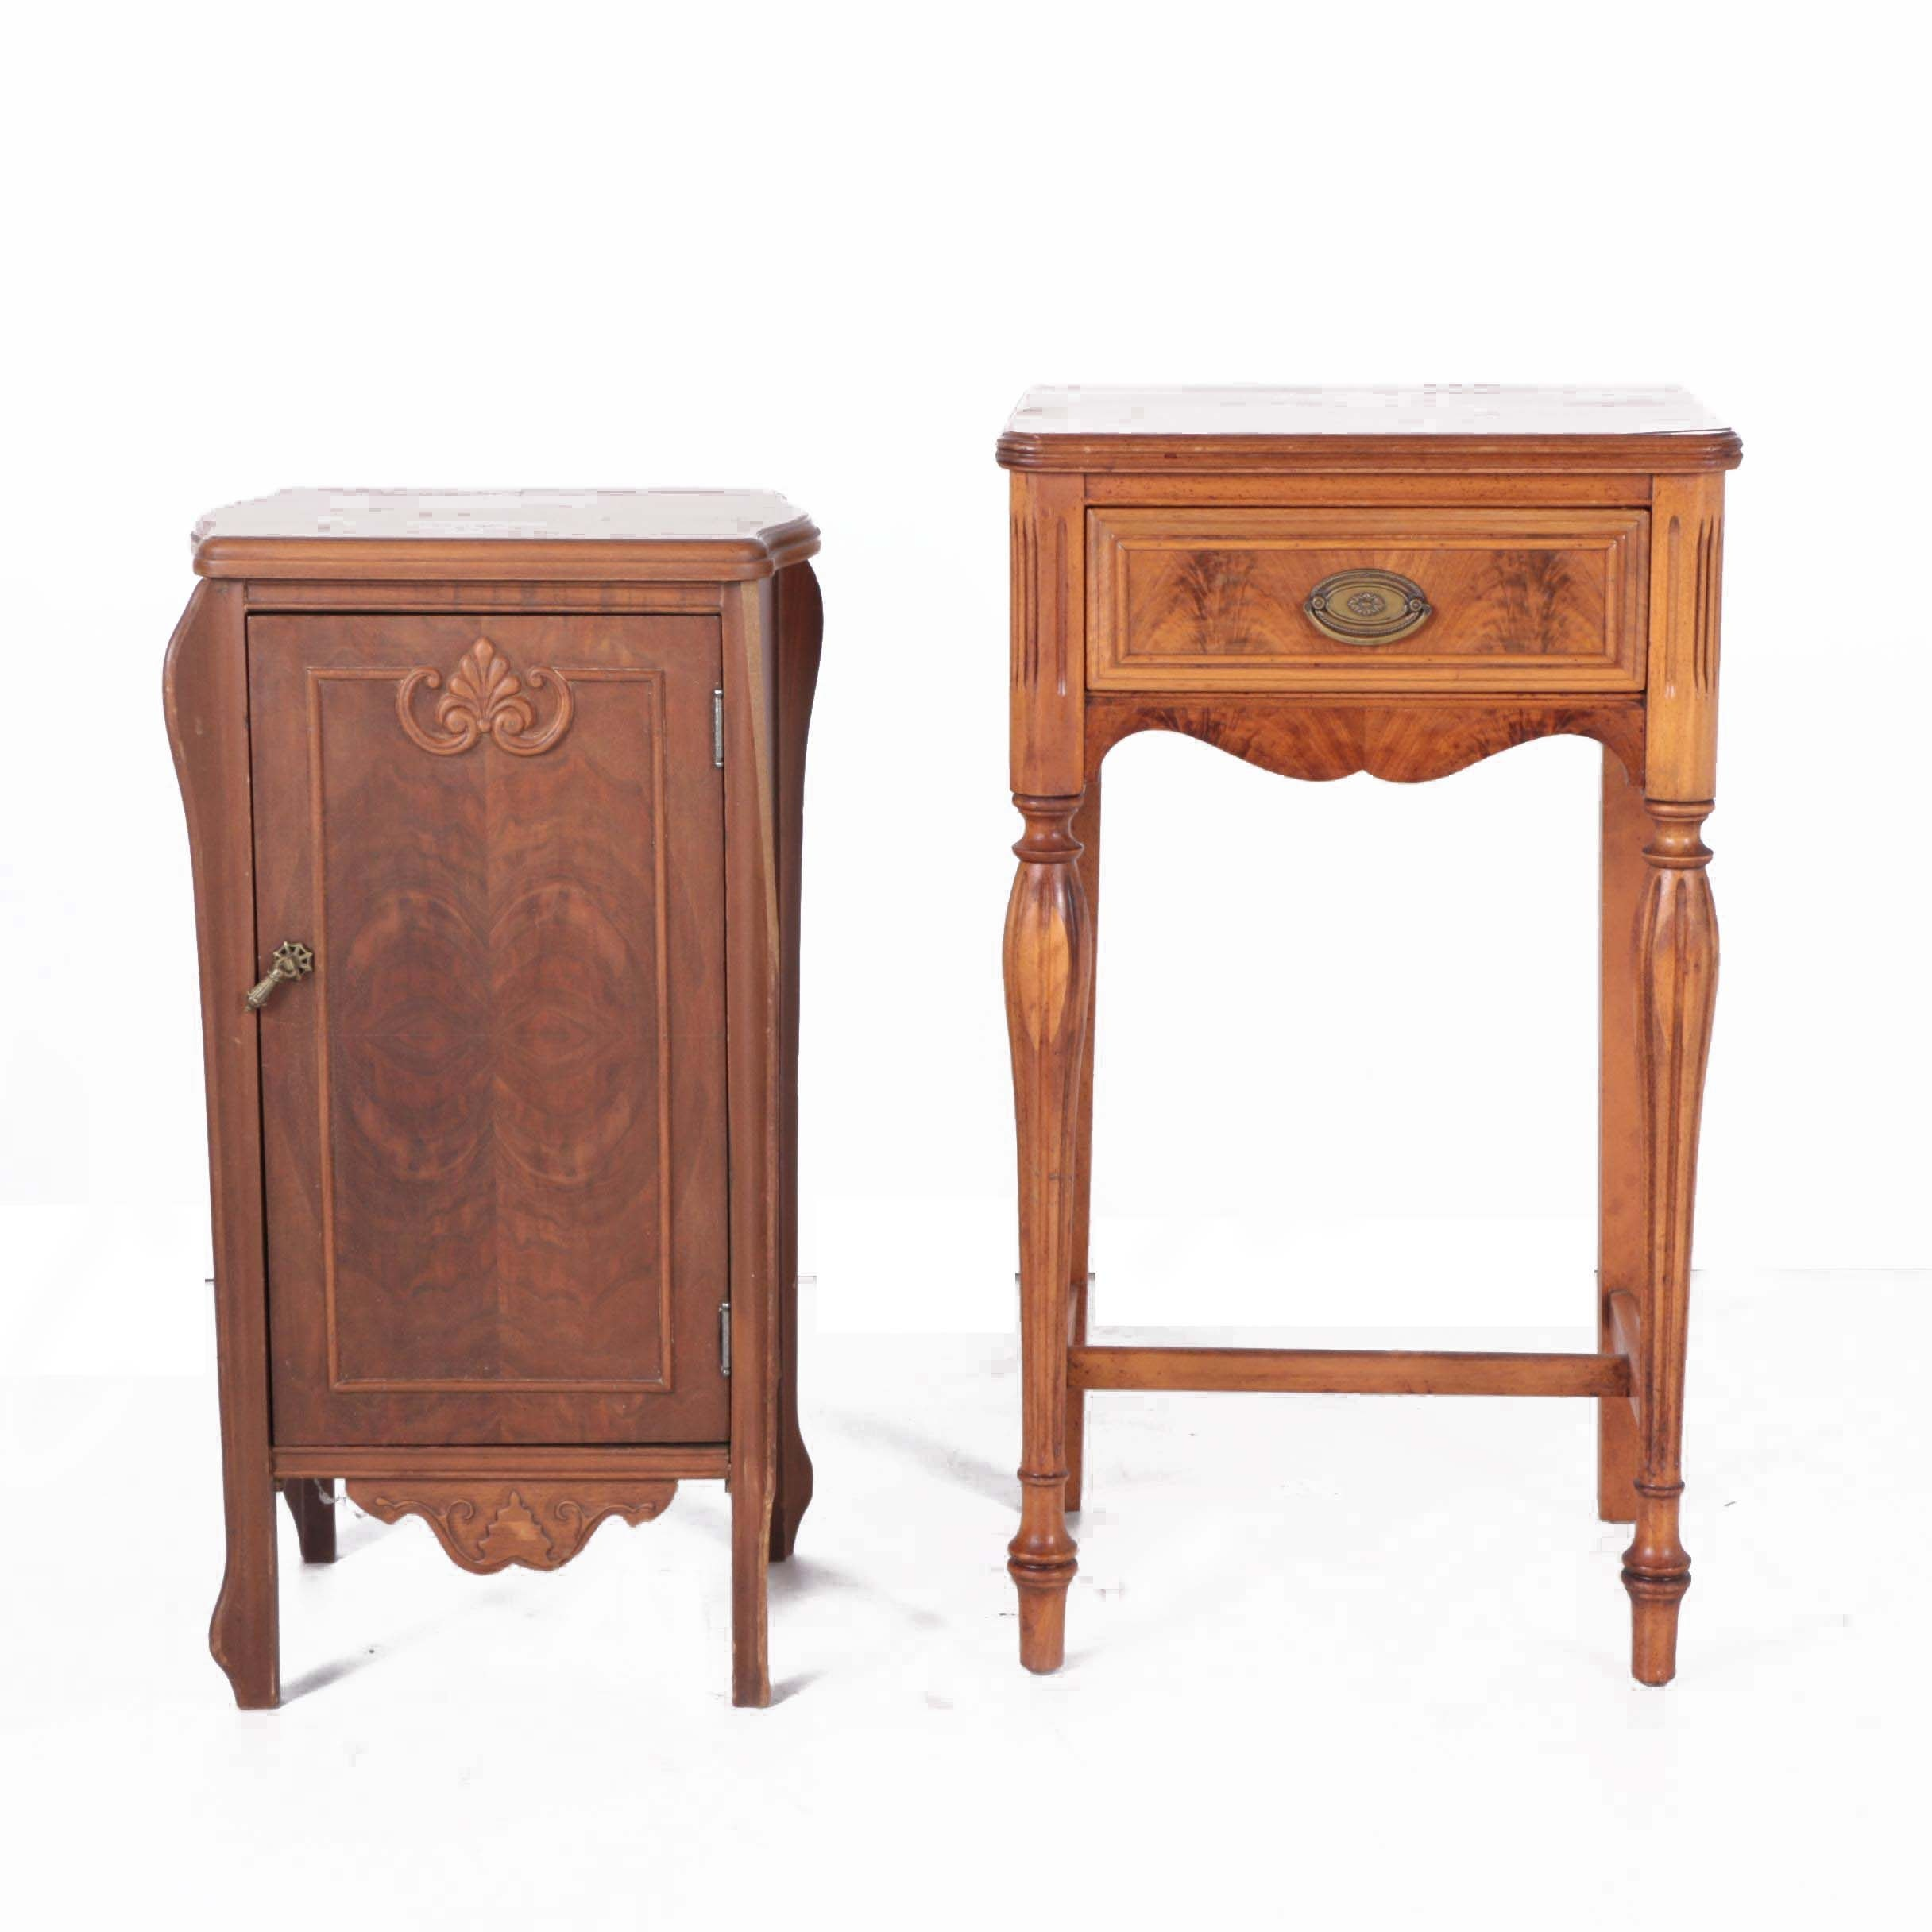 Victorian Style Mahogany Music Cabinet and Burl Wood End Table, Mid 20th Century